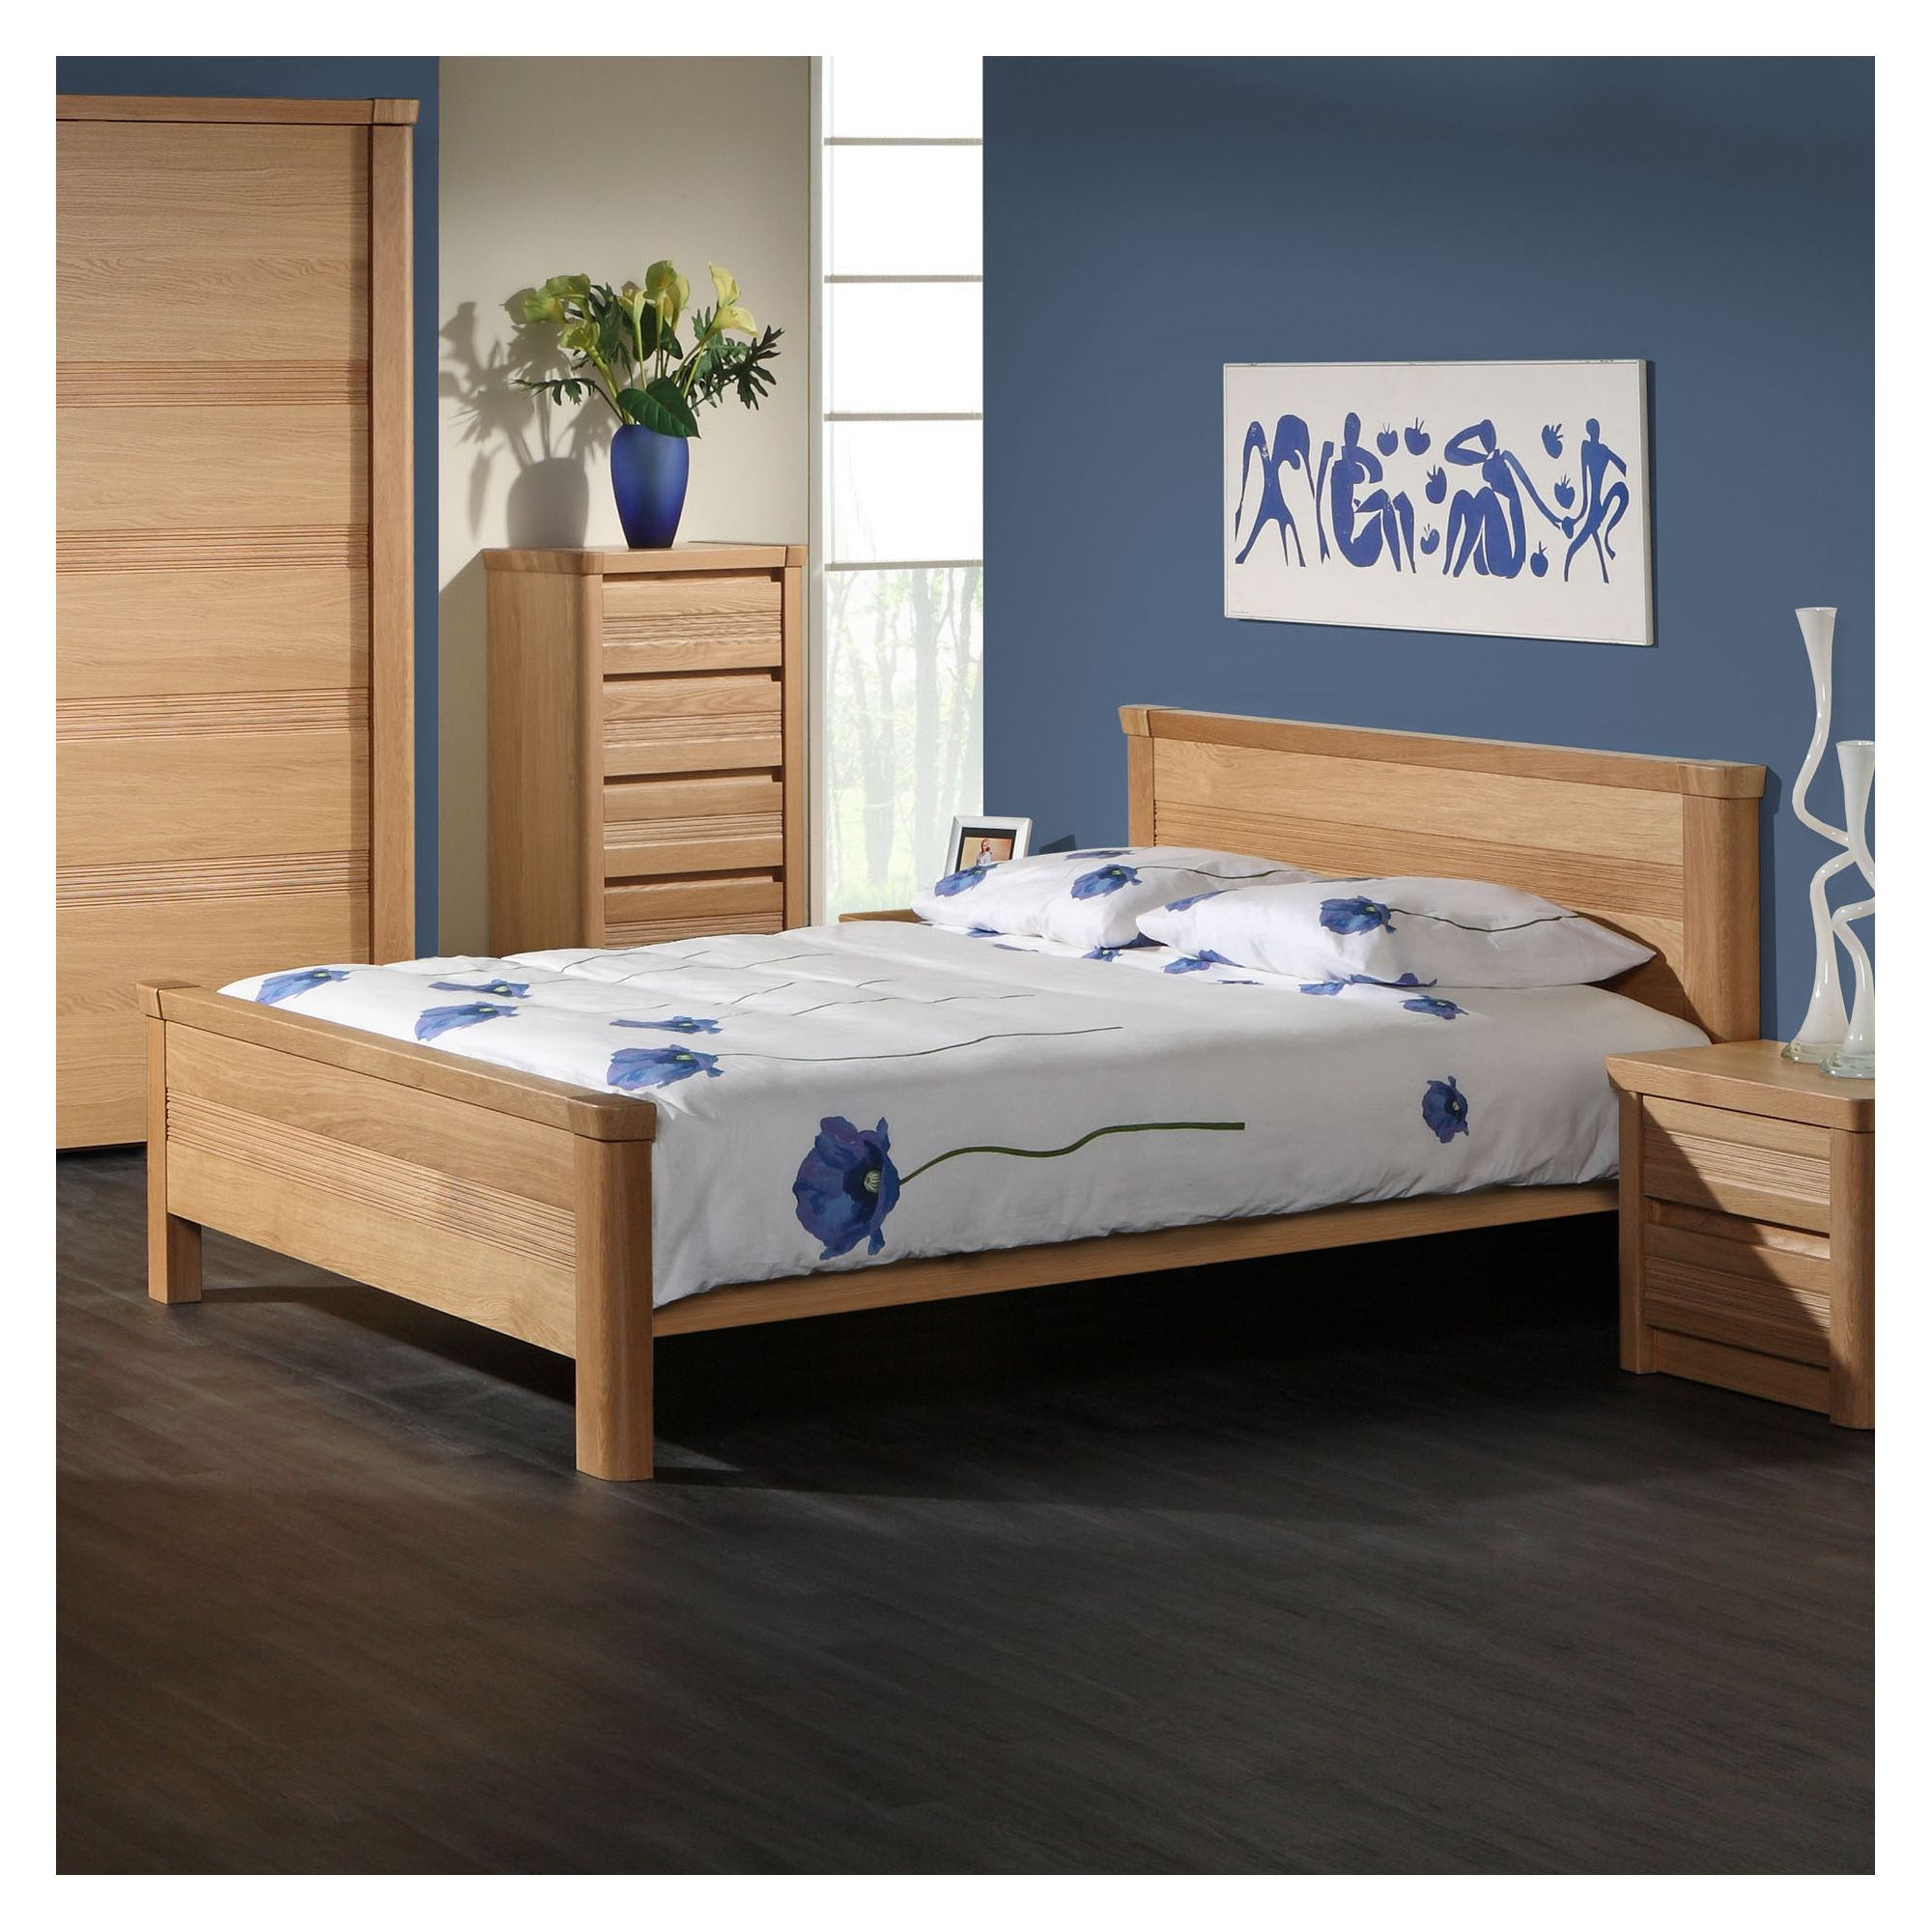 Sleepline Mundo Bed - Mat Lacquered - King at Tesco Direct